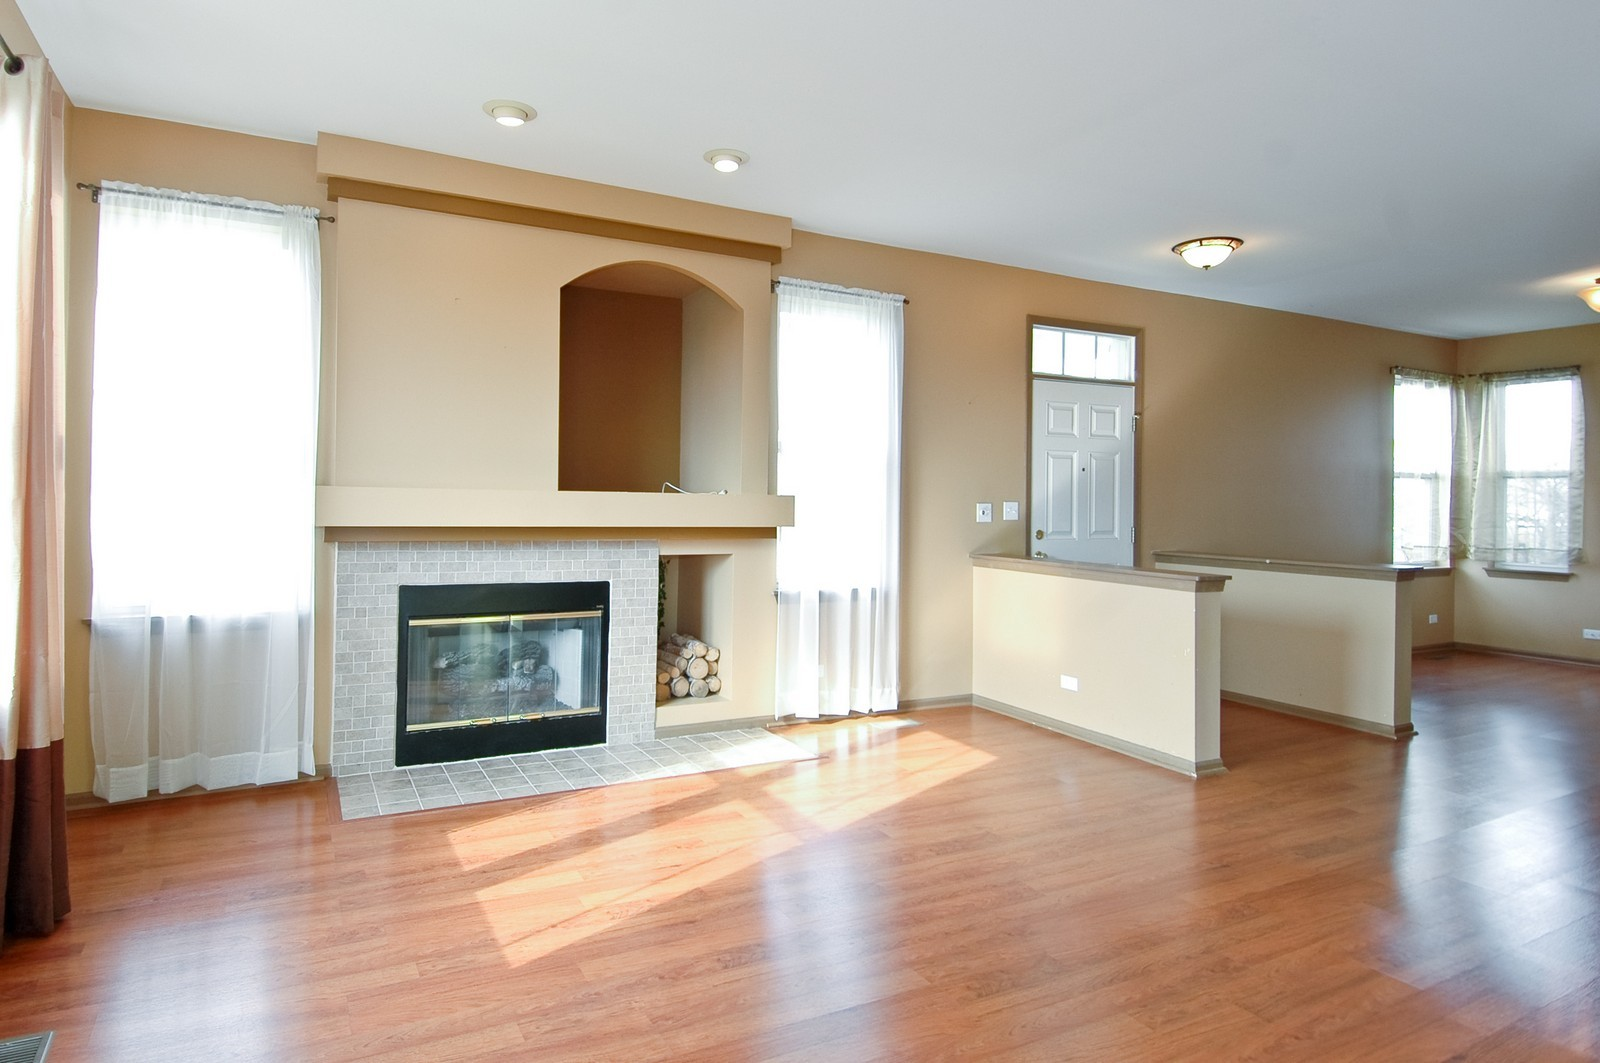 Real Estate Photography - 2988 Langston, St Charles, IL, 60175 - Living Room / Dining Room